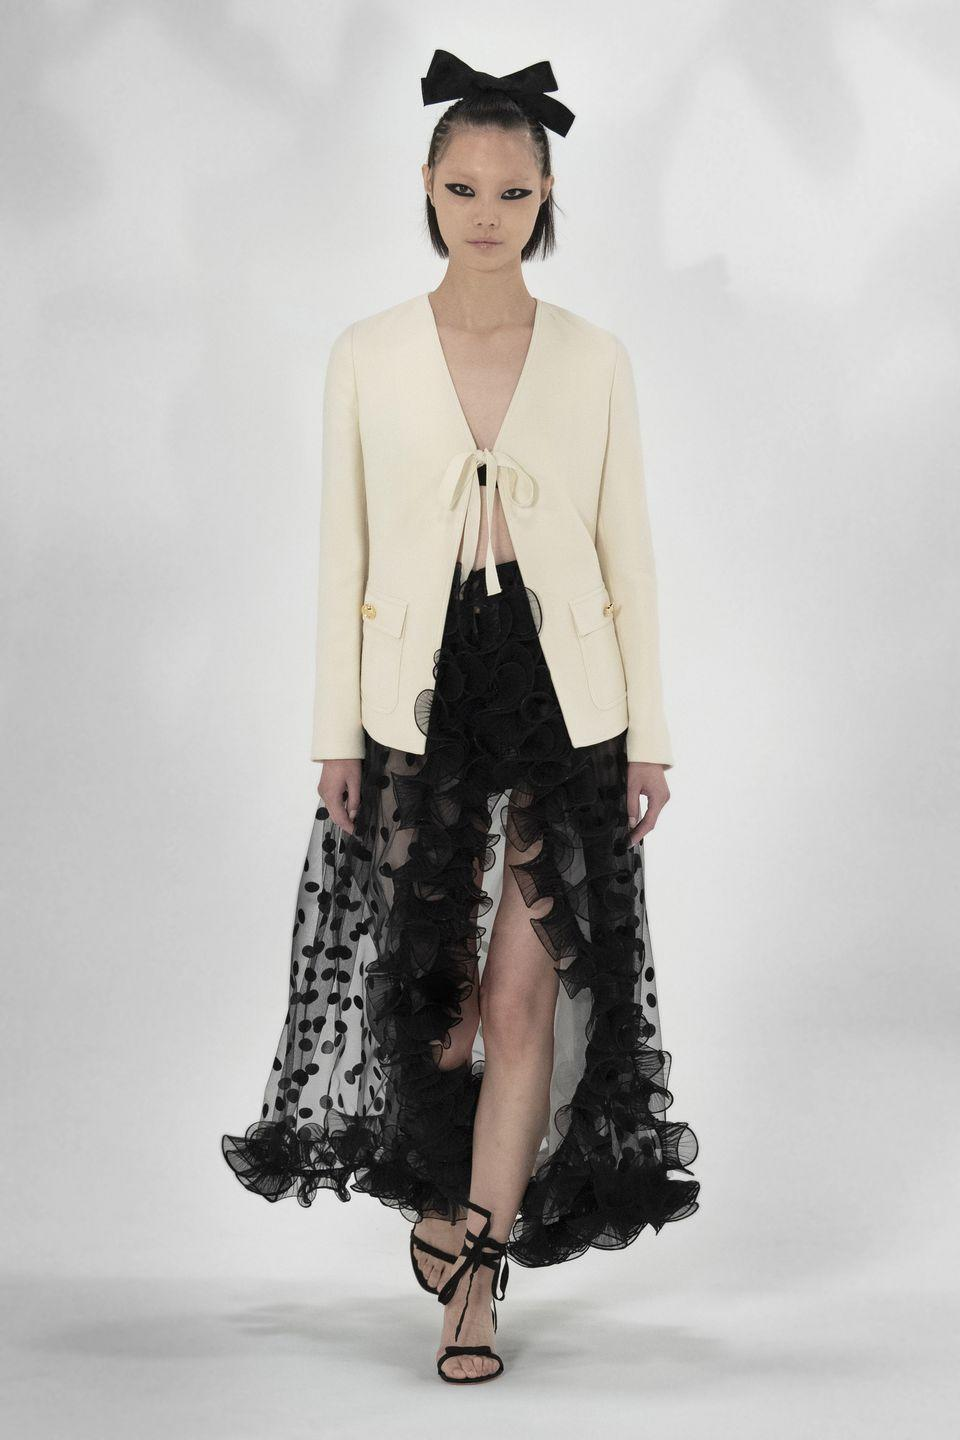 "<p>For spring/summer 2021, Giambattista Valli headed home to Italy for inspiration, basing the new-season collection on the ""blooming nature of the Mediterranean"". The collection – which featured sorbet shades, tropical prints, floaty holiday dresses and a dash of the designer's trademark tulle – was presented digitally via a video (<a href=""https://www.instagram.com/p/CF9eOkOBwkc/"" rel=""nofollow noopener"" target=""_blank"" data-ylk=""slk:which you can watch here"" class=""link rapid-noclick-resp"">which you can watch here</a>), as well as through a catwalk show that took place to no audience.</p>"